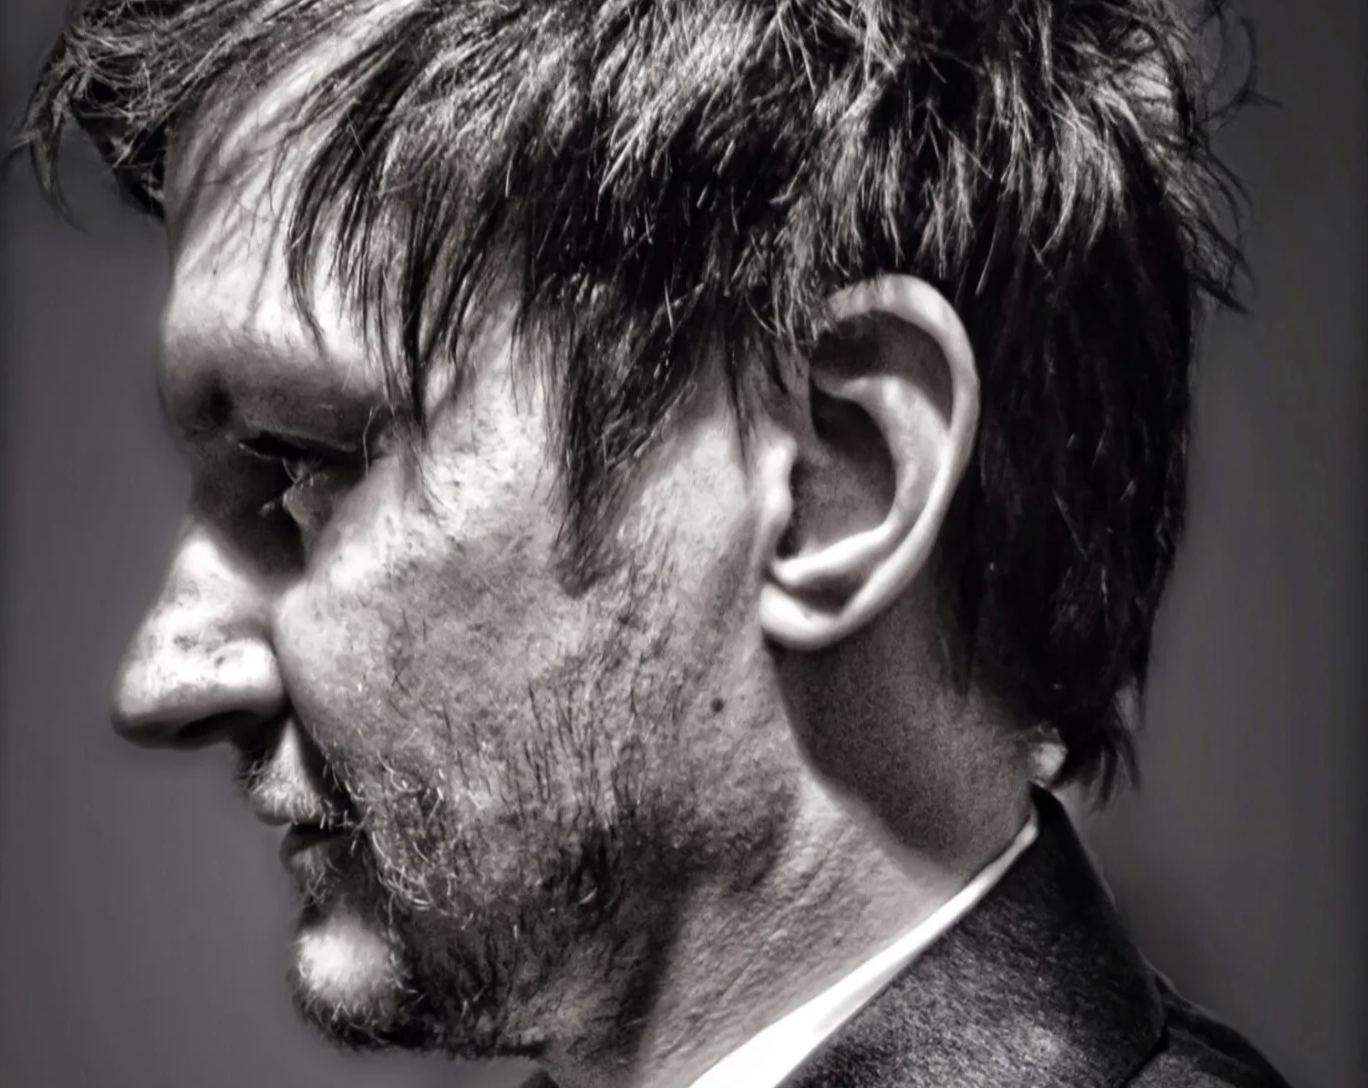 US drum & bass pioneer Karl K launches fundraiser to aid recovery from debilitating stroke